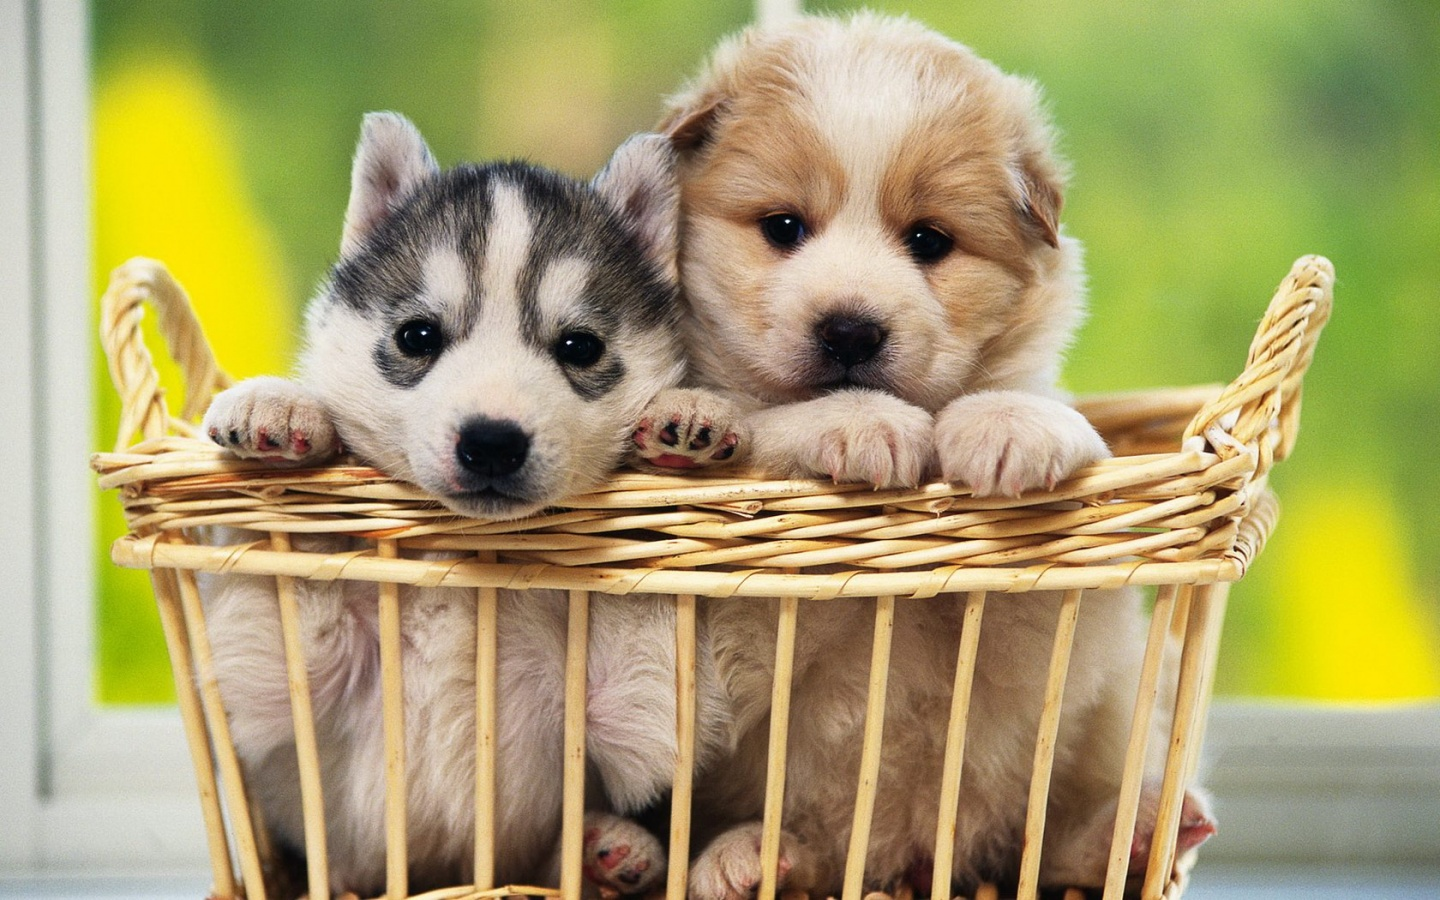 Cute Dogs Wallpapers Download Cute Dogs Wallpapers for Desktop 1440x900